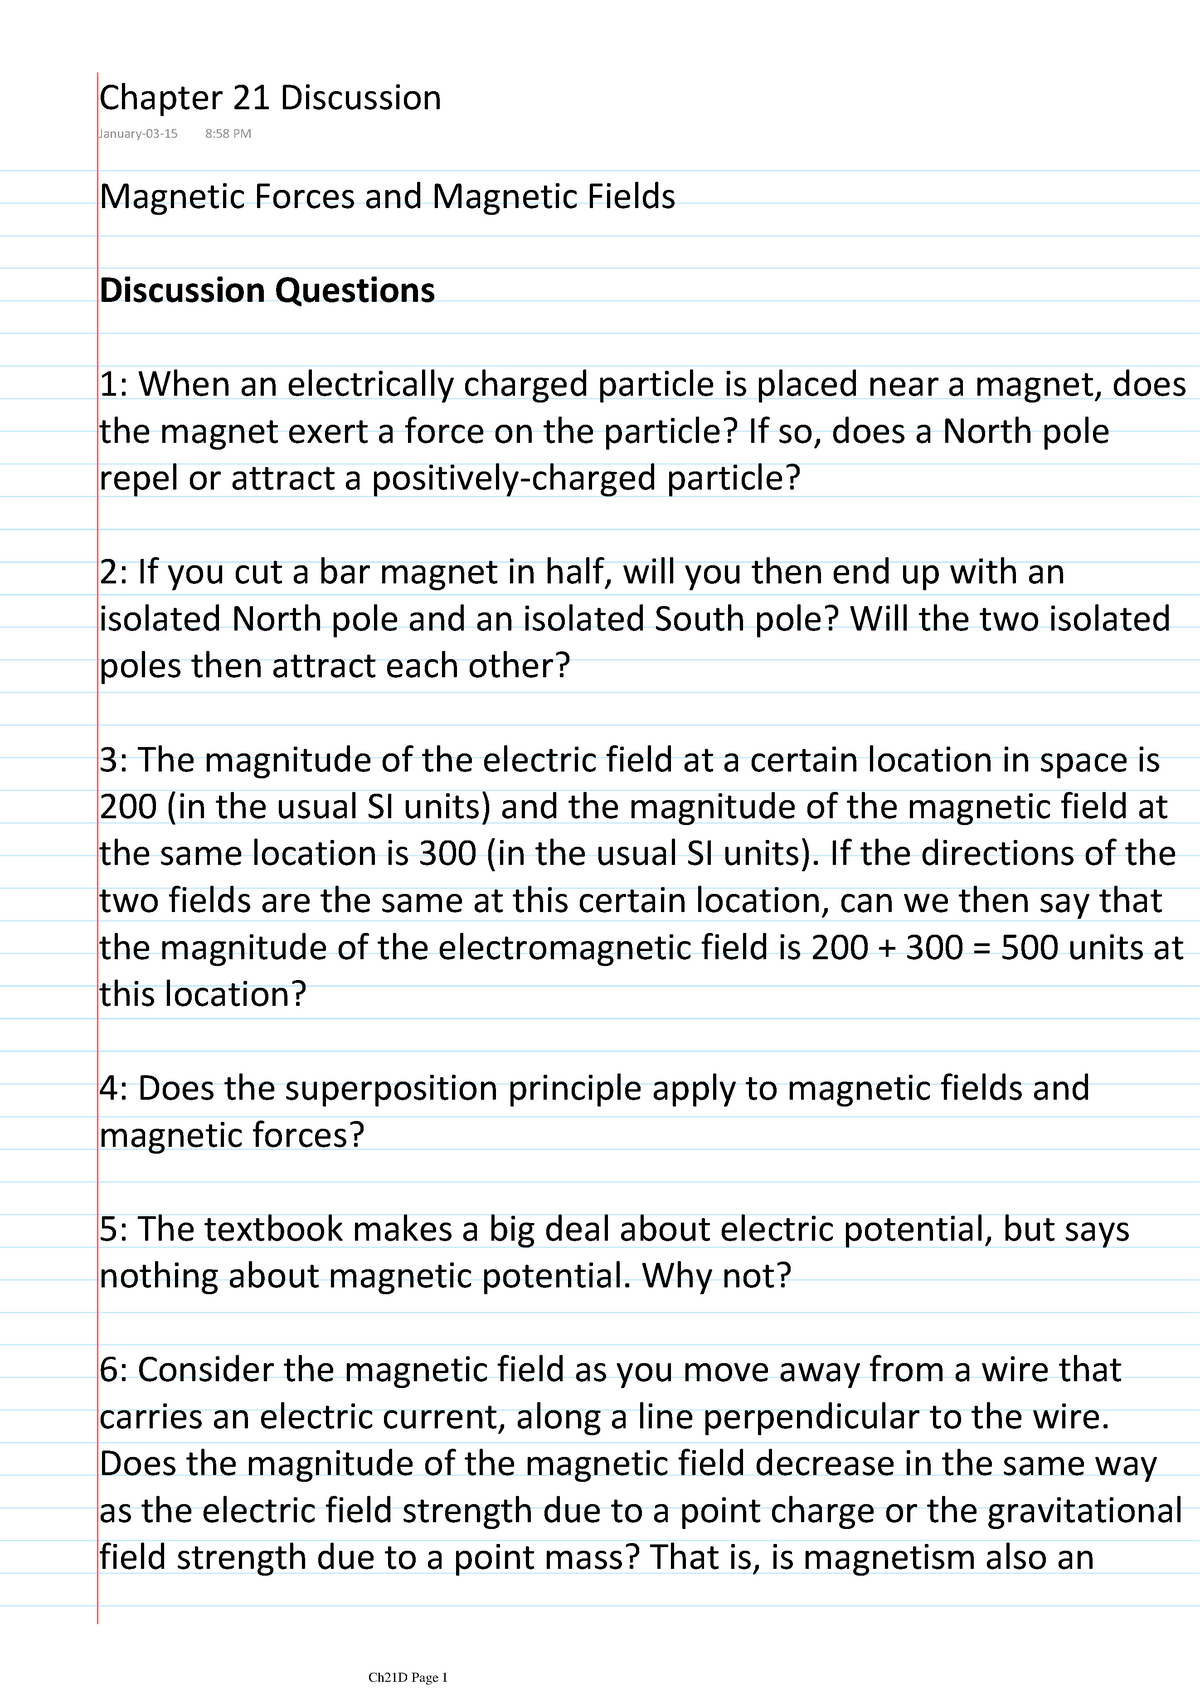 Chapter 21 - Magnetic Forces and Magnetic Fields